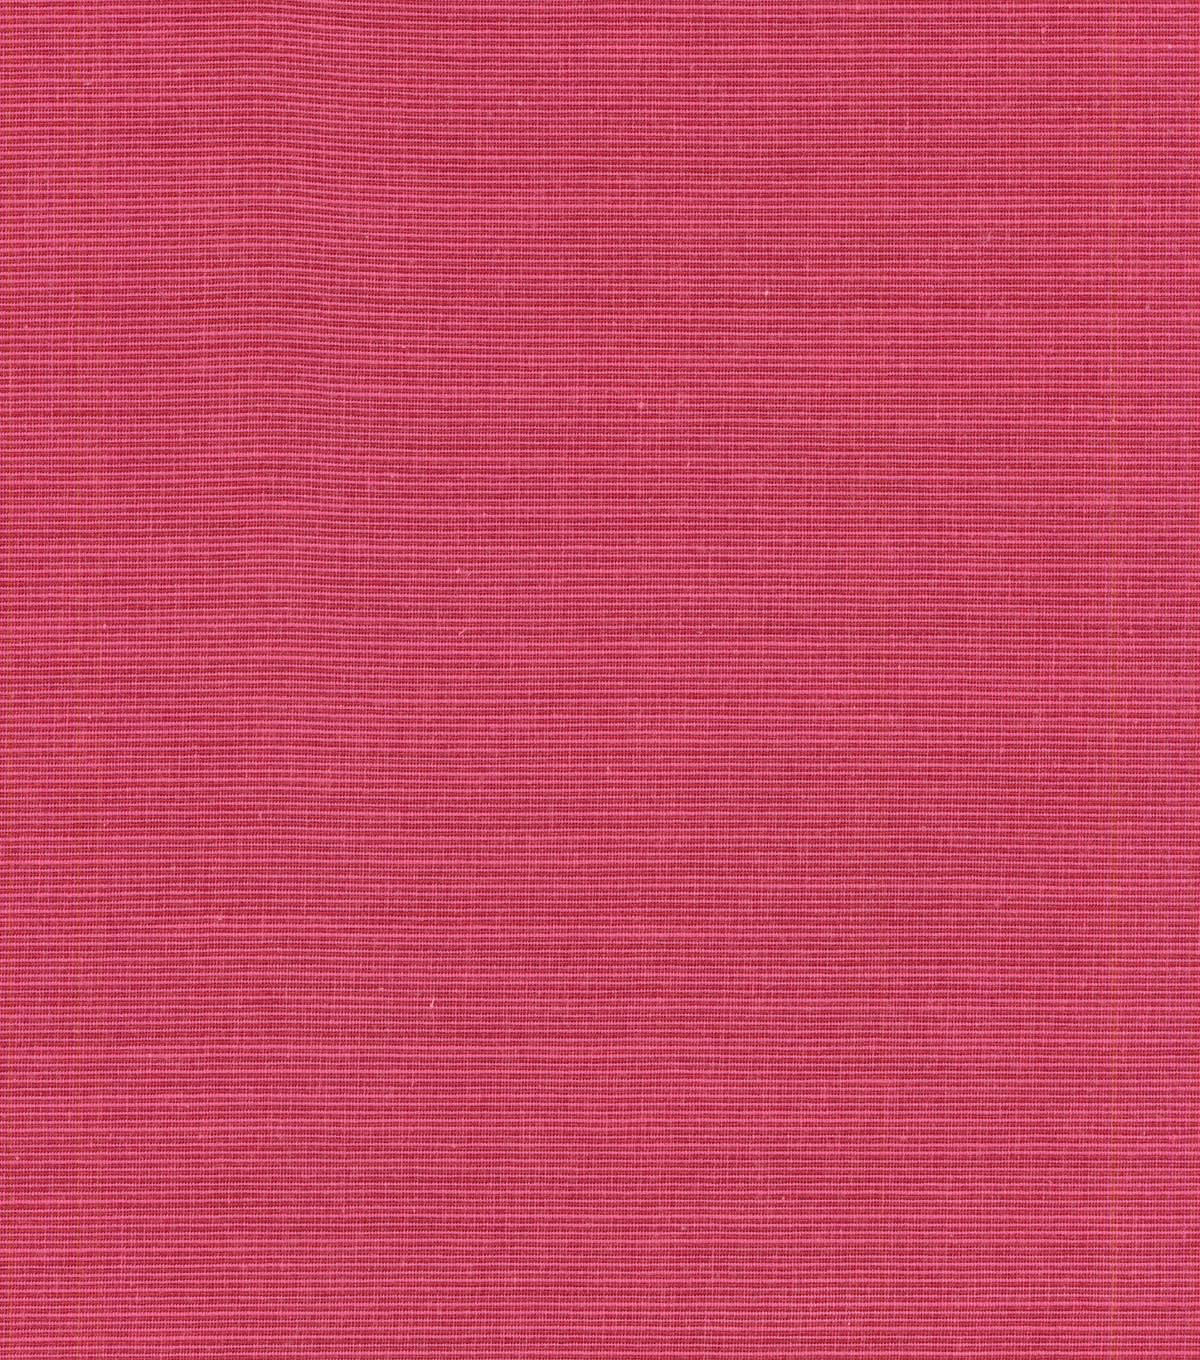 Multi-Purpose Decor Fabric 54\u0022-Montana Teaberry